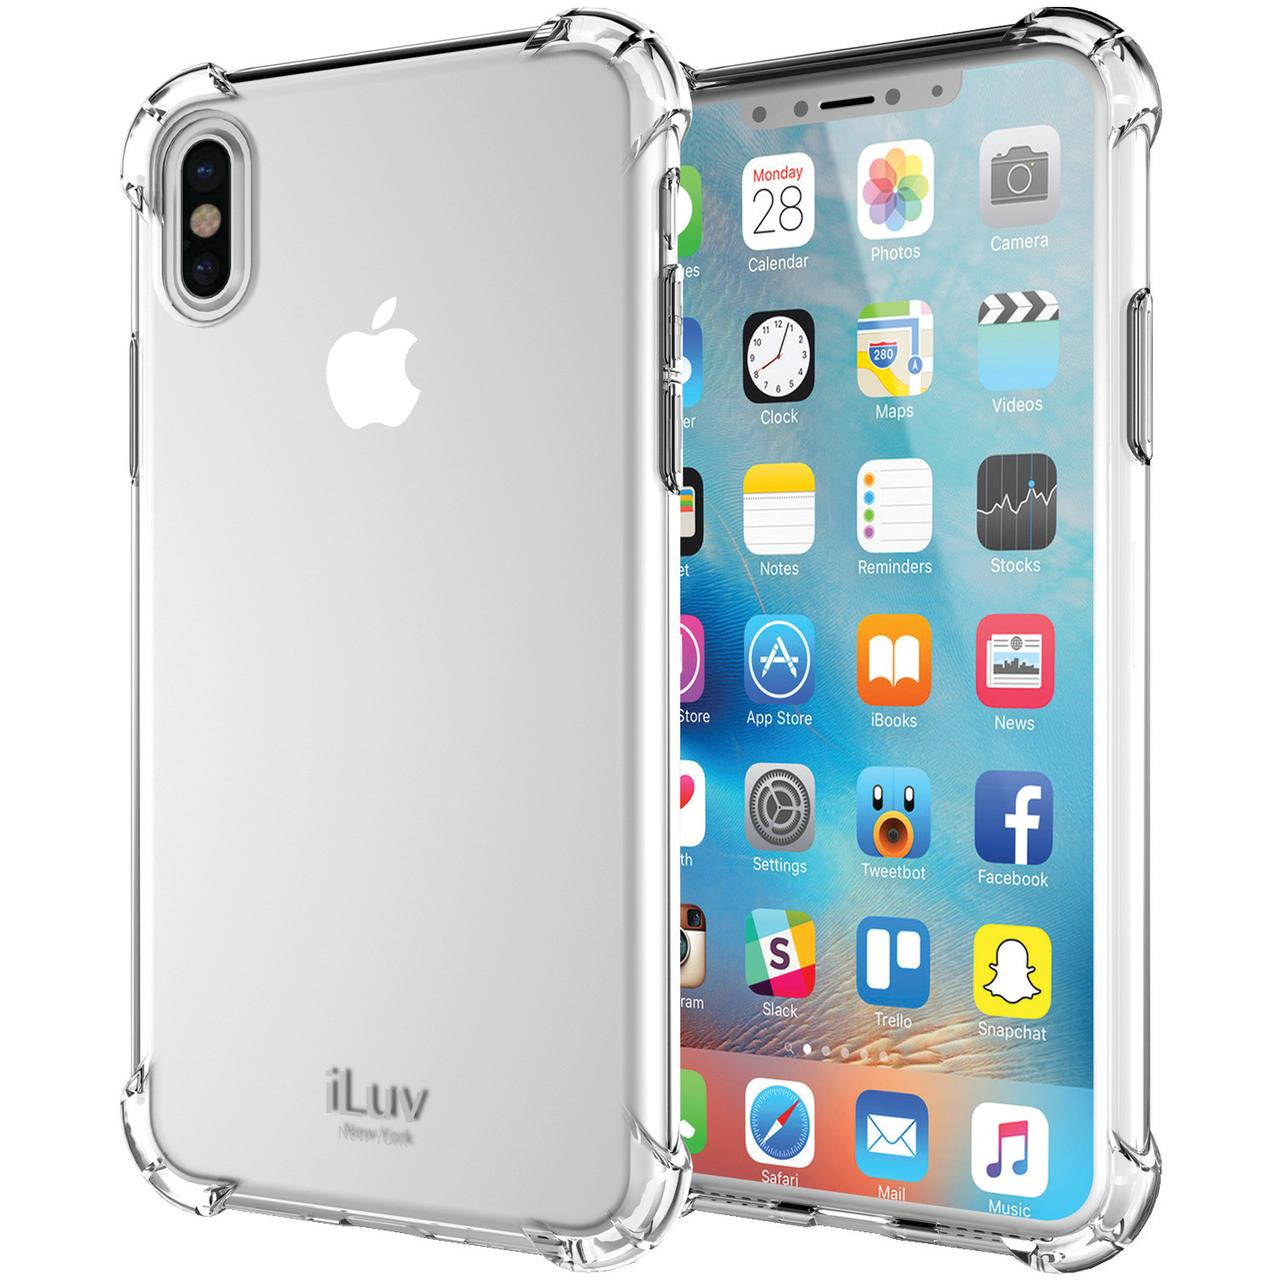 iLuv ILVAIXGELACL Gelato Case for iPhone X (Clear)